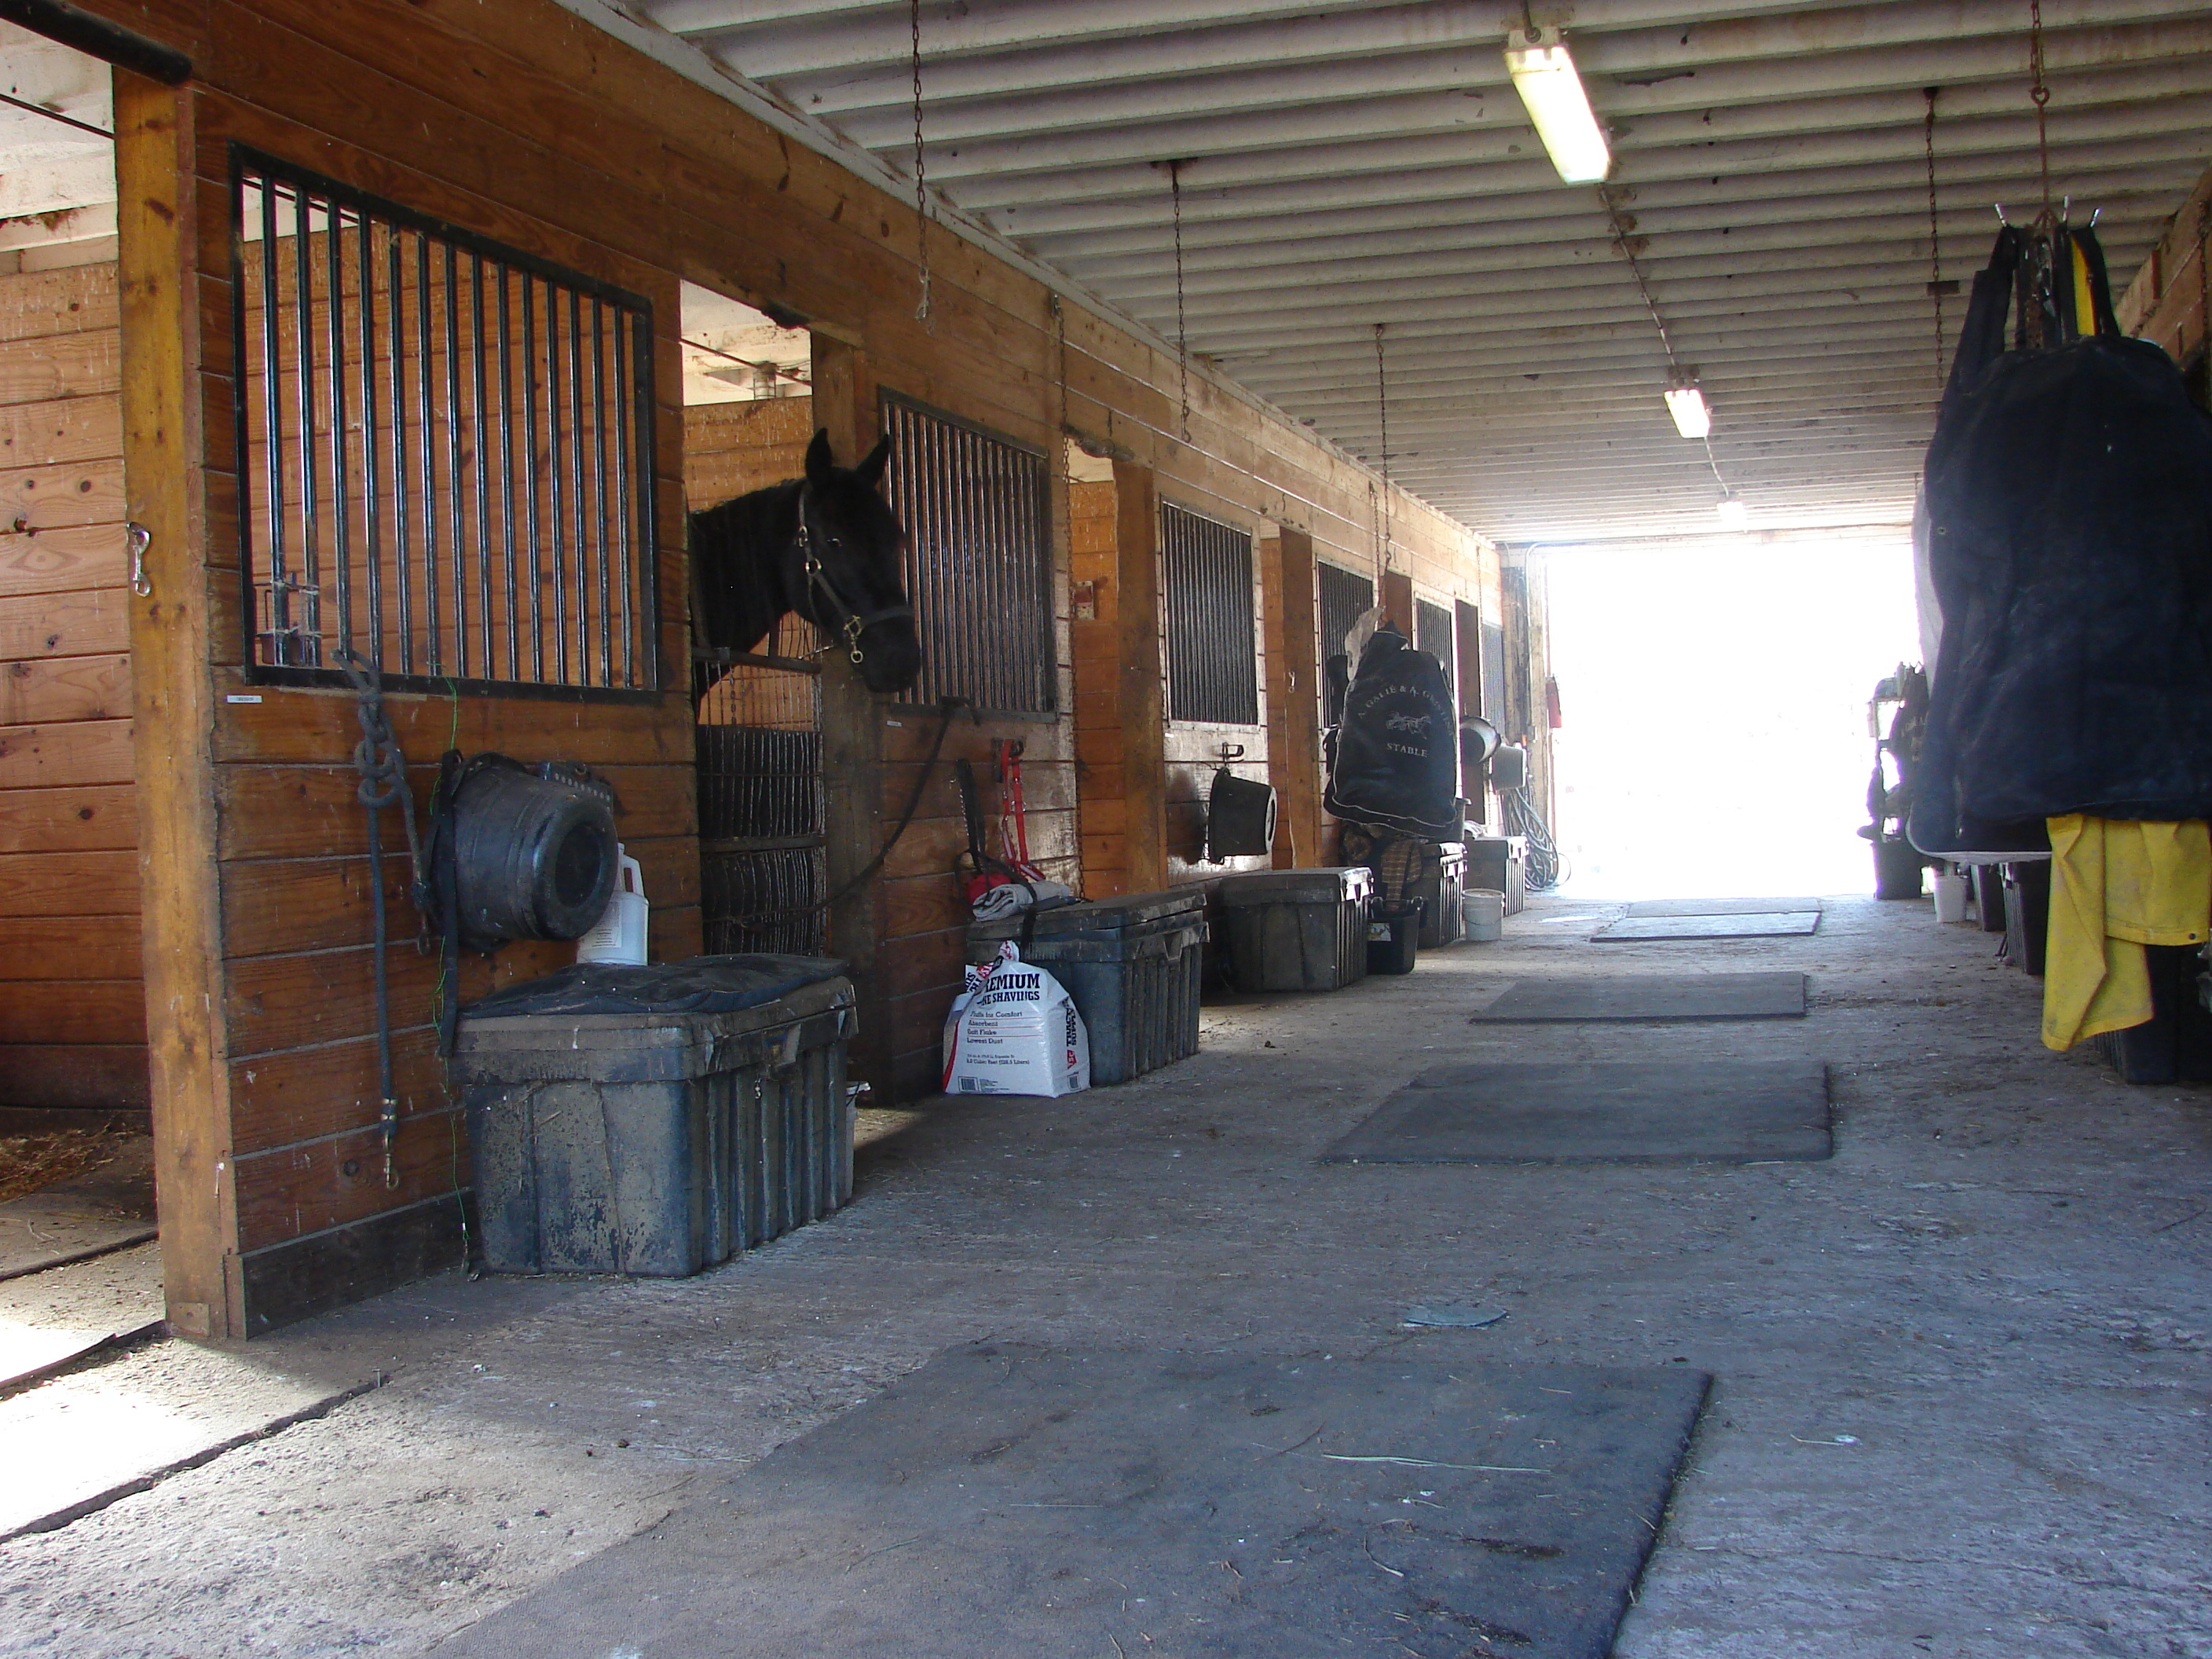 Stalls in barn to be kept in good shape when preparing to sell your PA horse property